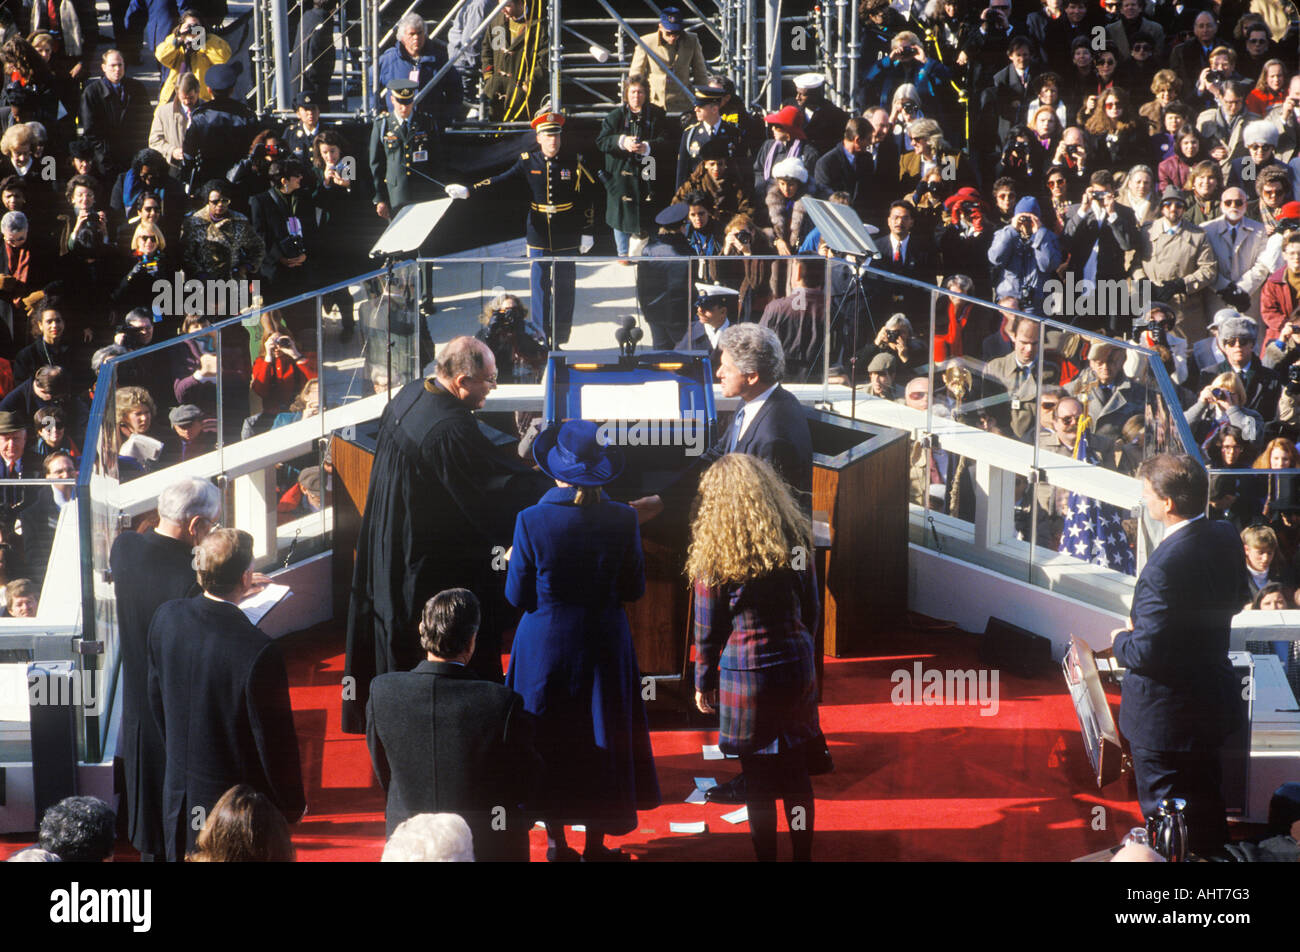 Bill Clinton 42nd President takes the Oath of Office on Inauguration Day from Chief Justice William Rehnquist on January 20 - Stock Image